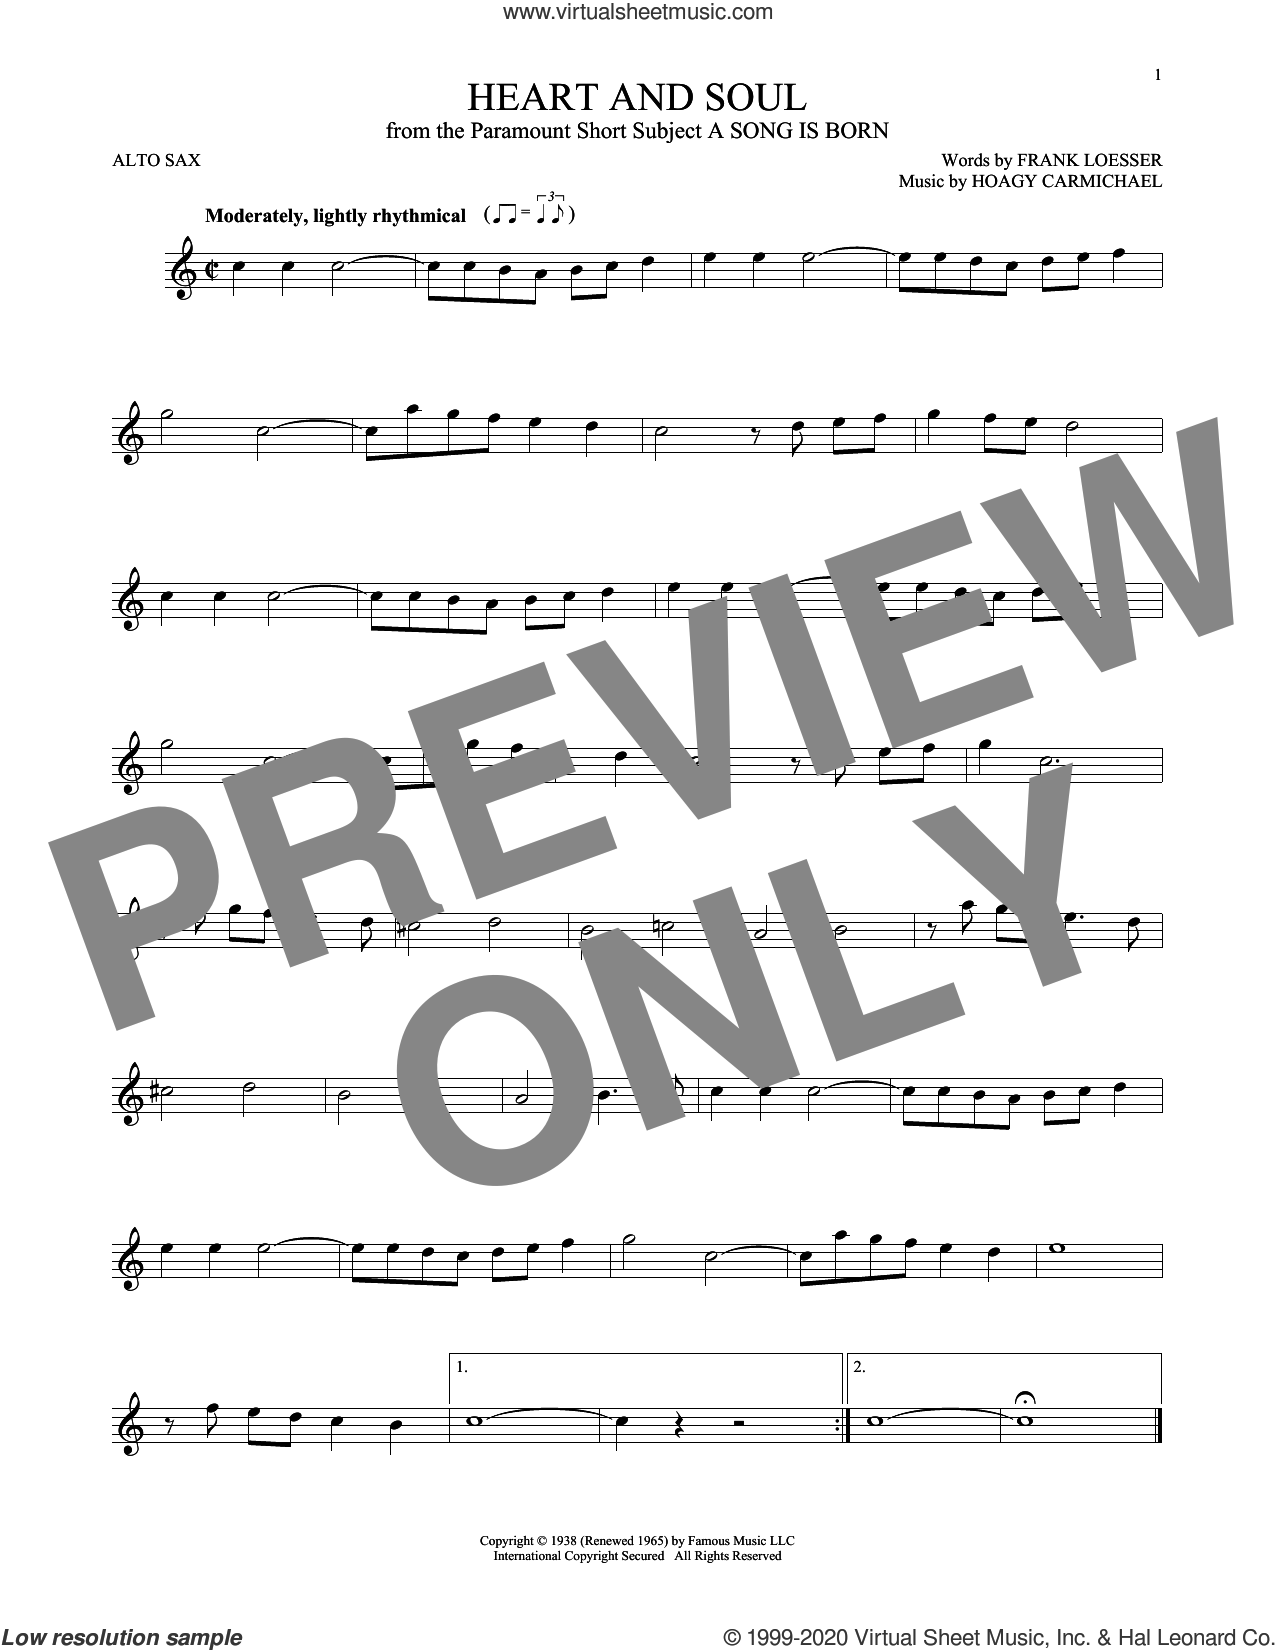 Heart And Soul sheet music for alto saxophone solo by Frank Loesser and Hoagy Carmichael, intermediate skill level